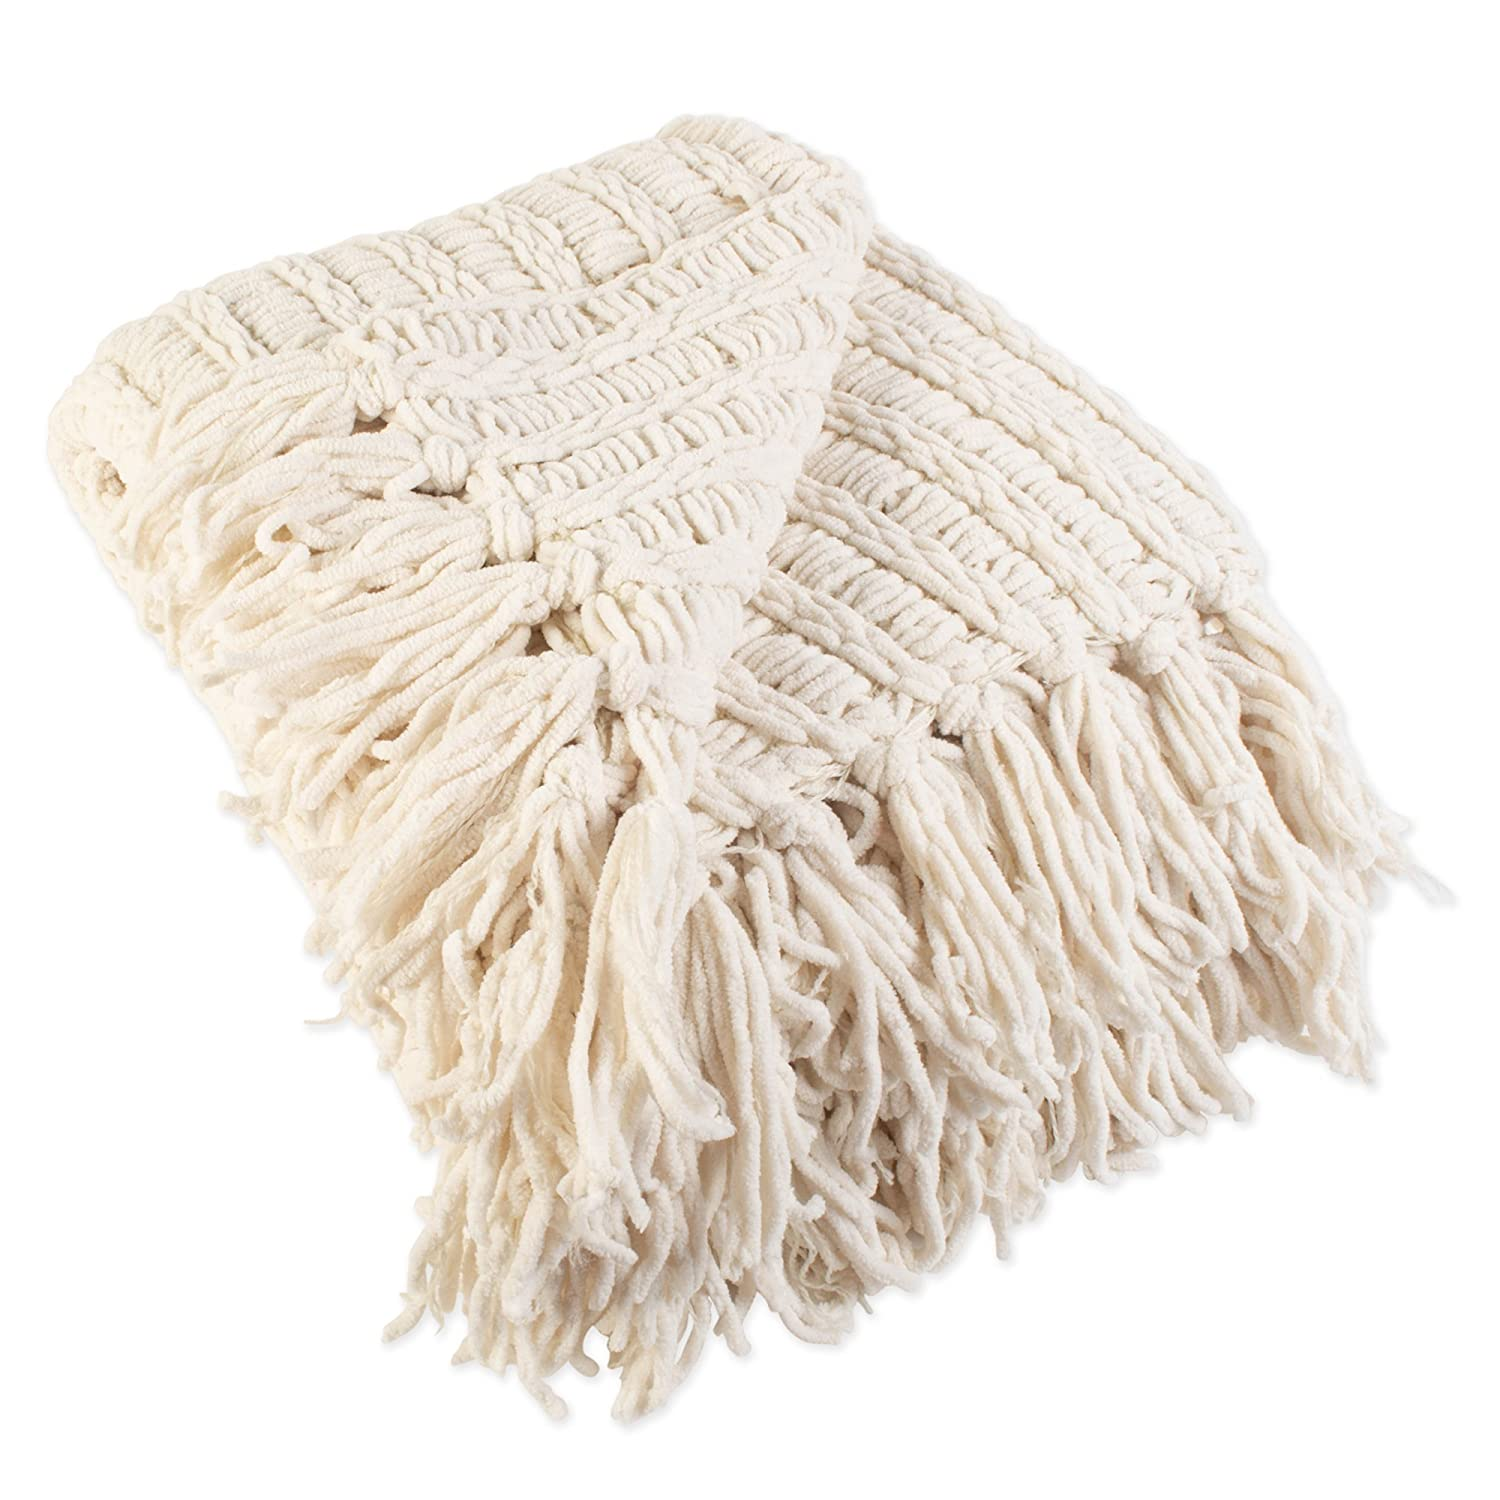 c9ee5005d4c J M Home Fashions Luxury Chenille Woven Knitted Throw Blanket with Fringe  (50x60